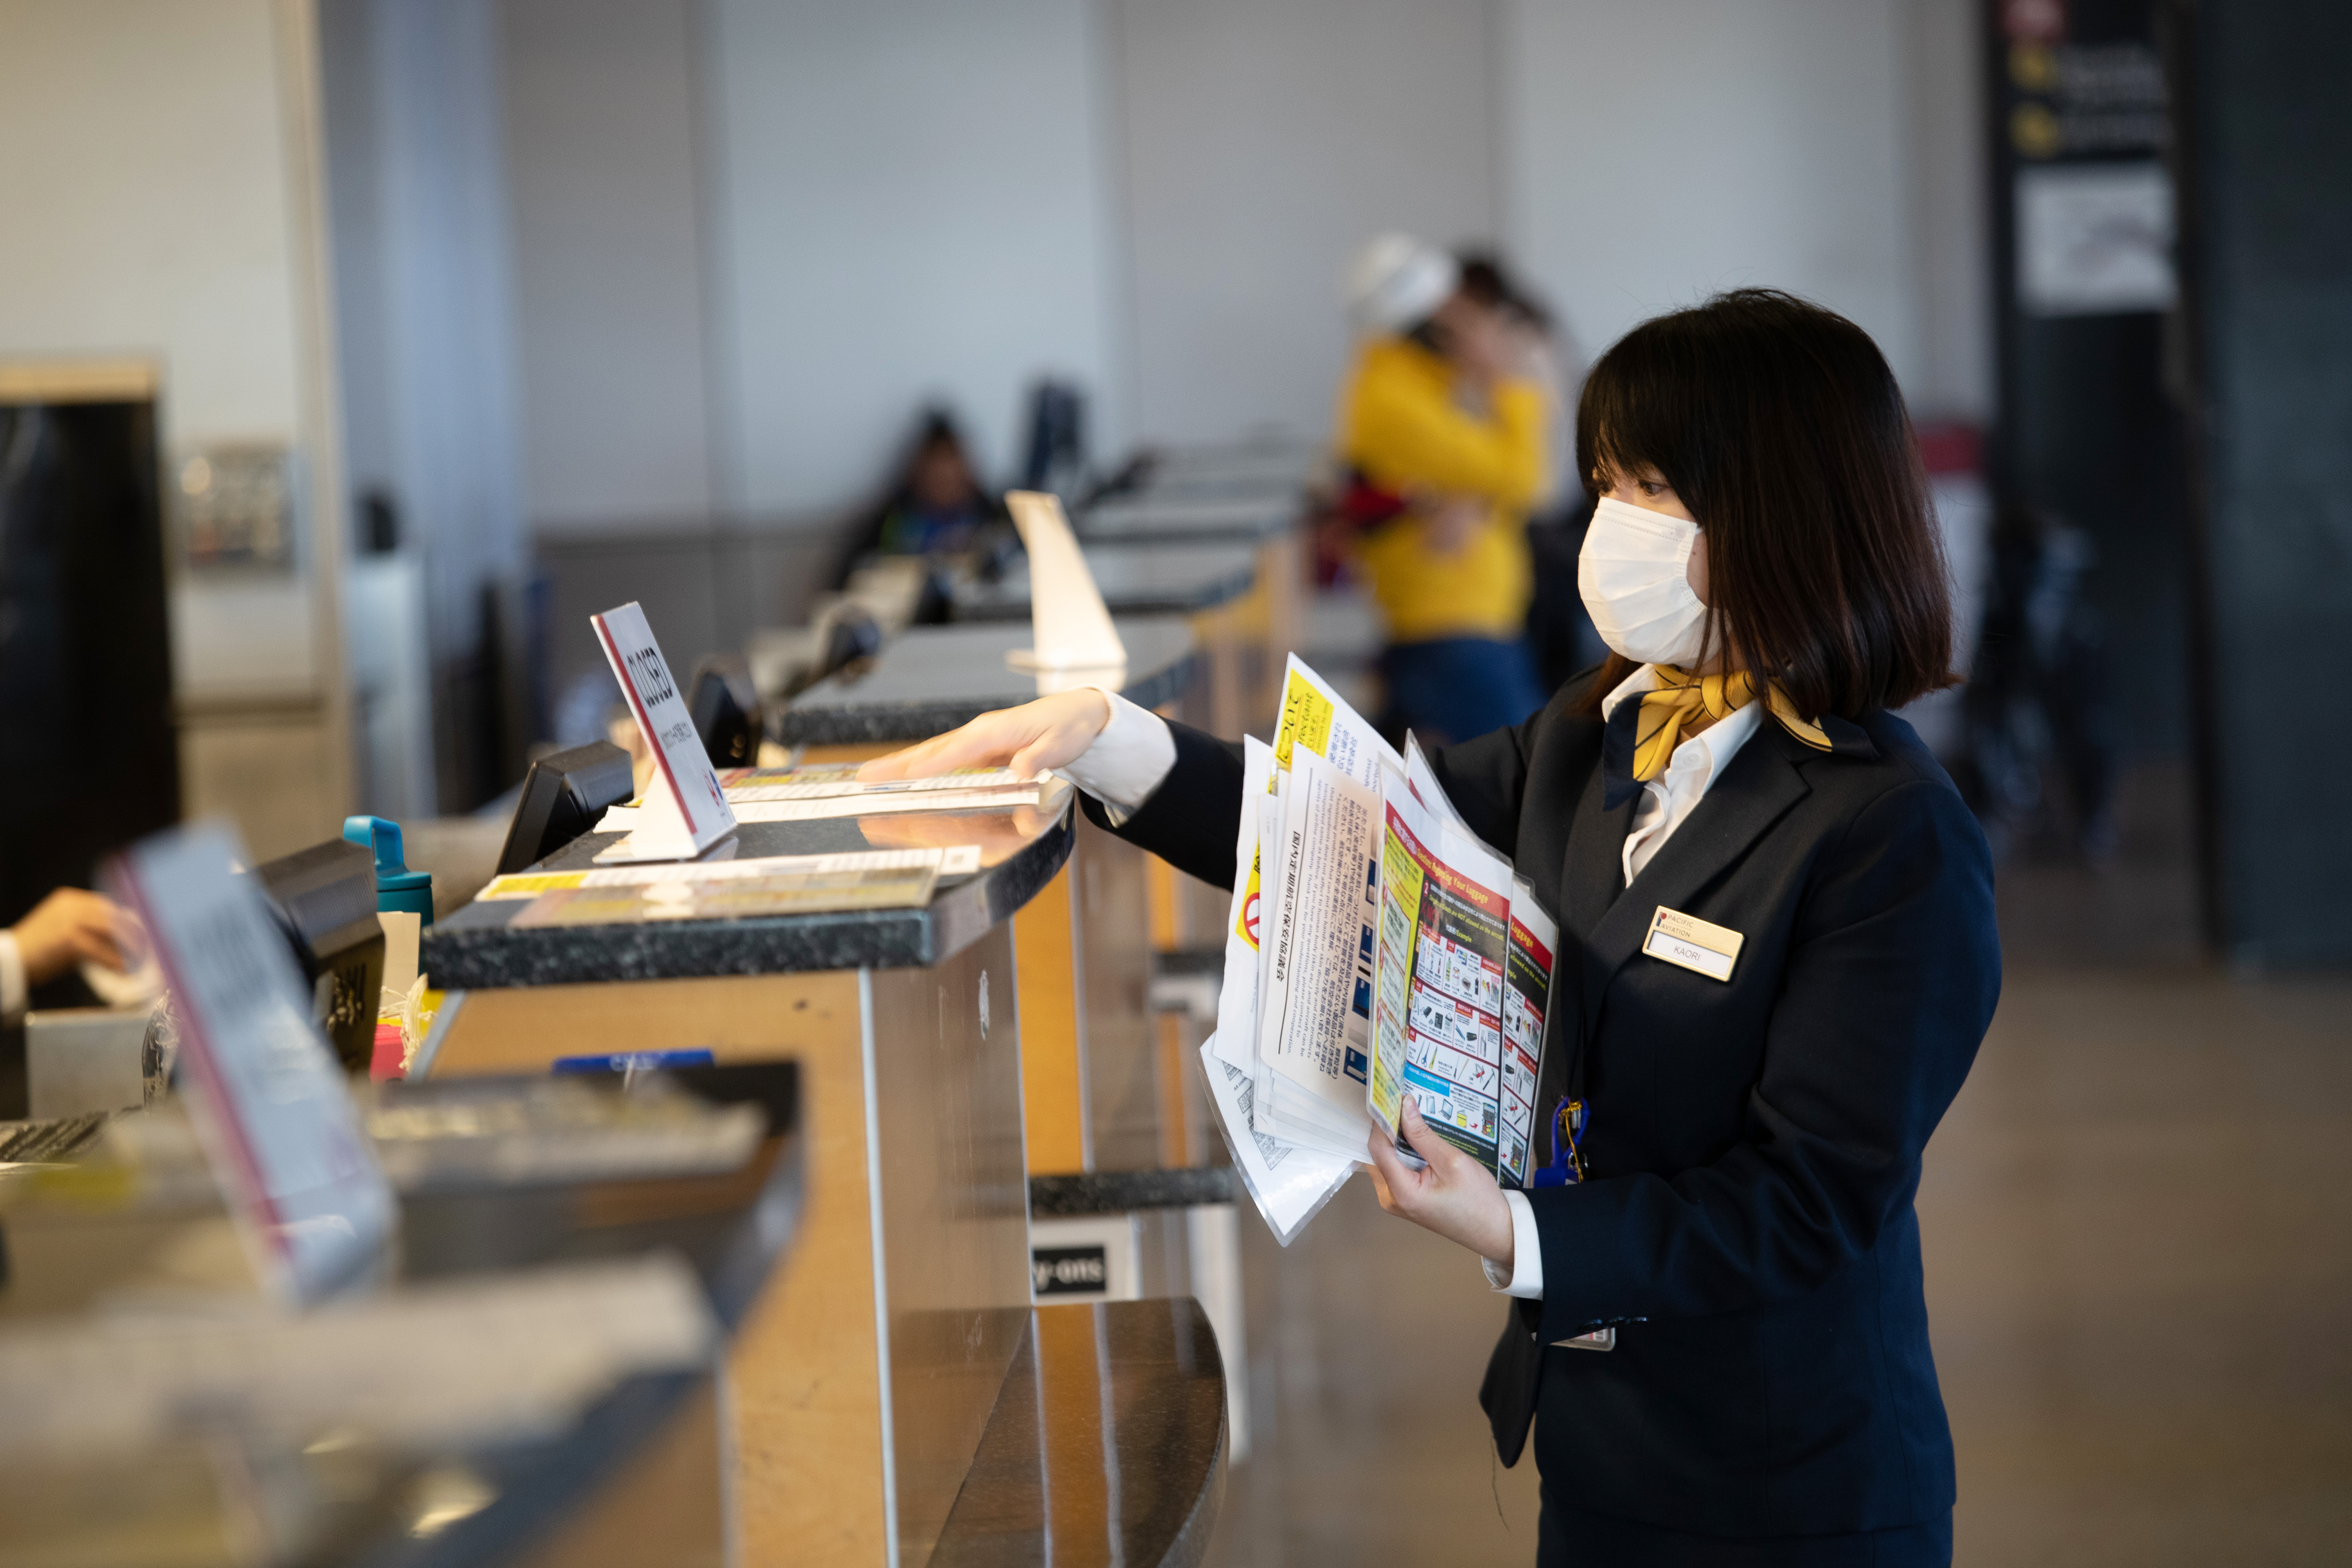 An airline employee places literature at check-in counters at the Seattle-Tacoma International Airport on March 15, 2020 in Seattle, Washington. (John Moore/Getty Images)